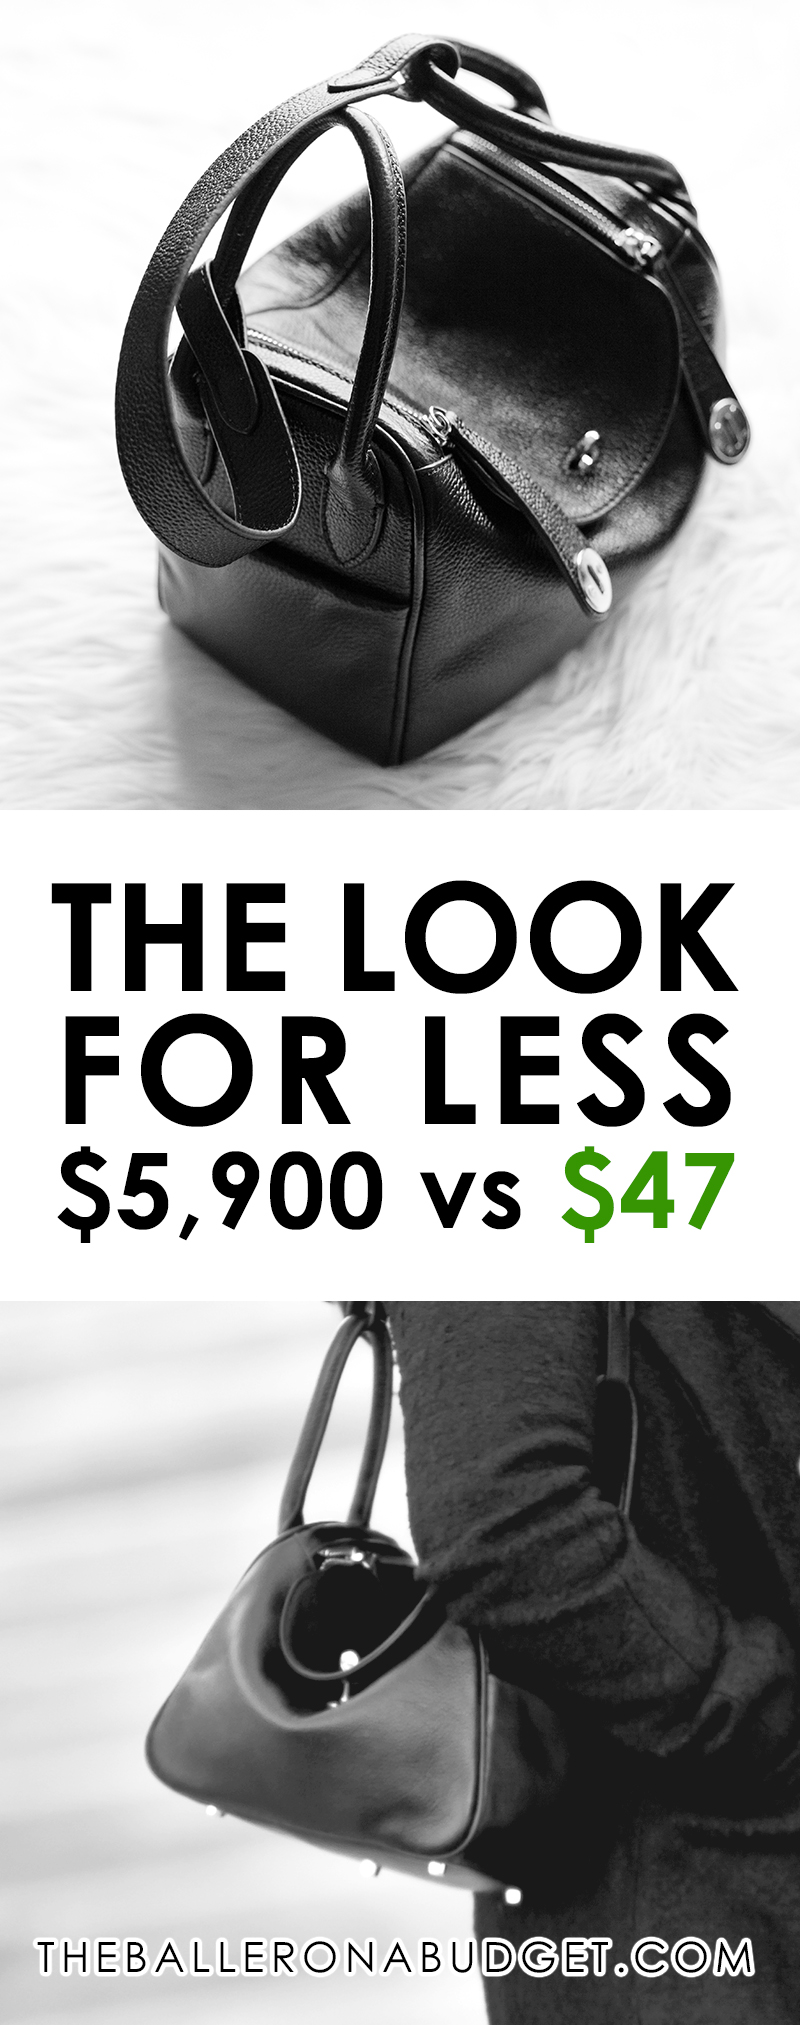 Want an Hermes Lindy without the $5,900 price tag? Here's a genuine leather bag that's similar to the Hermes Lindy for just $47.70, with vegan-friendly options available! - www.theballeronabudget.com